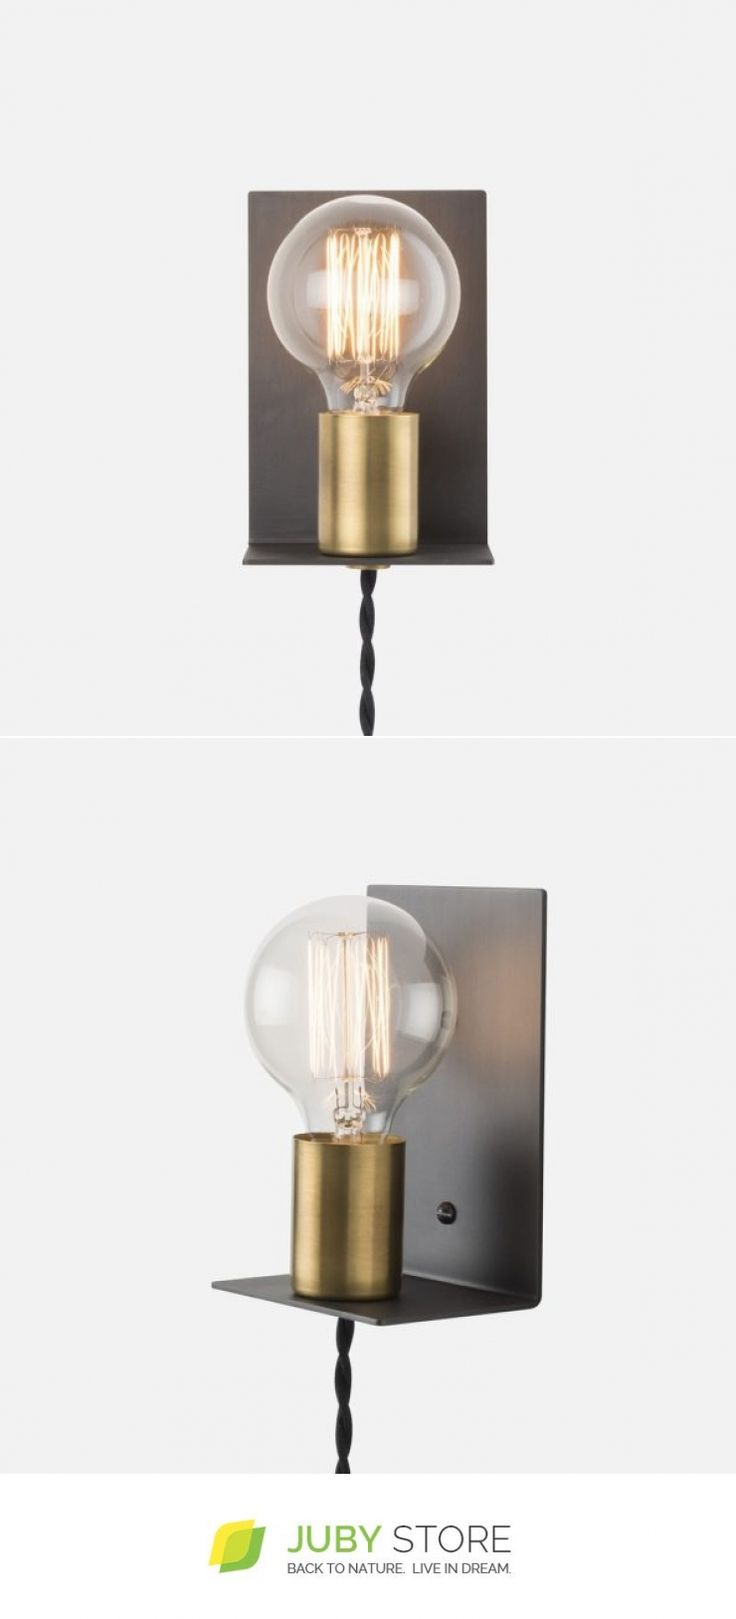 SchoolHouse Holmes Sconce - Juby Store